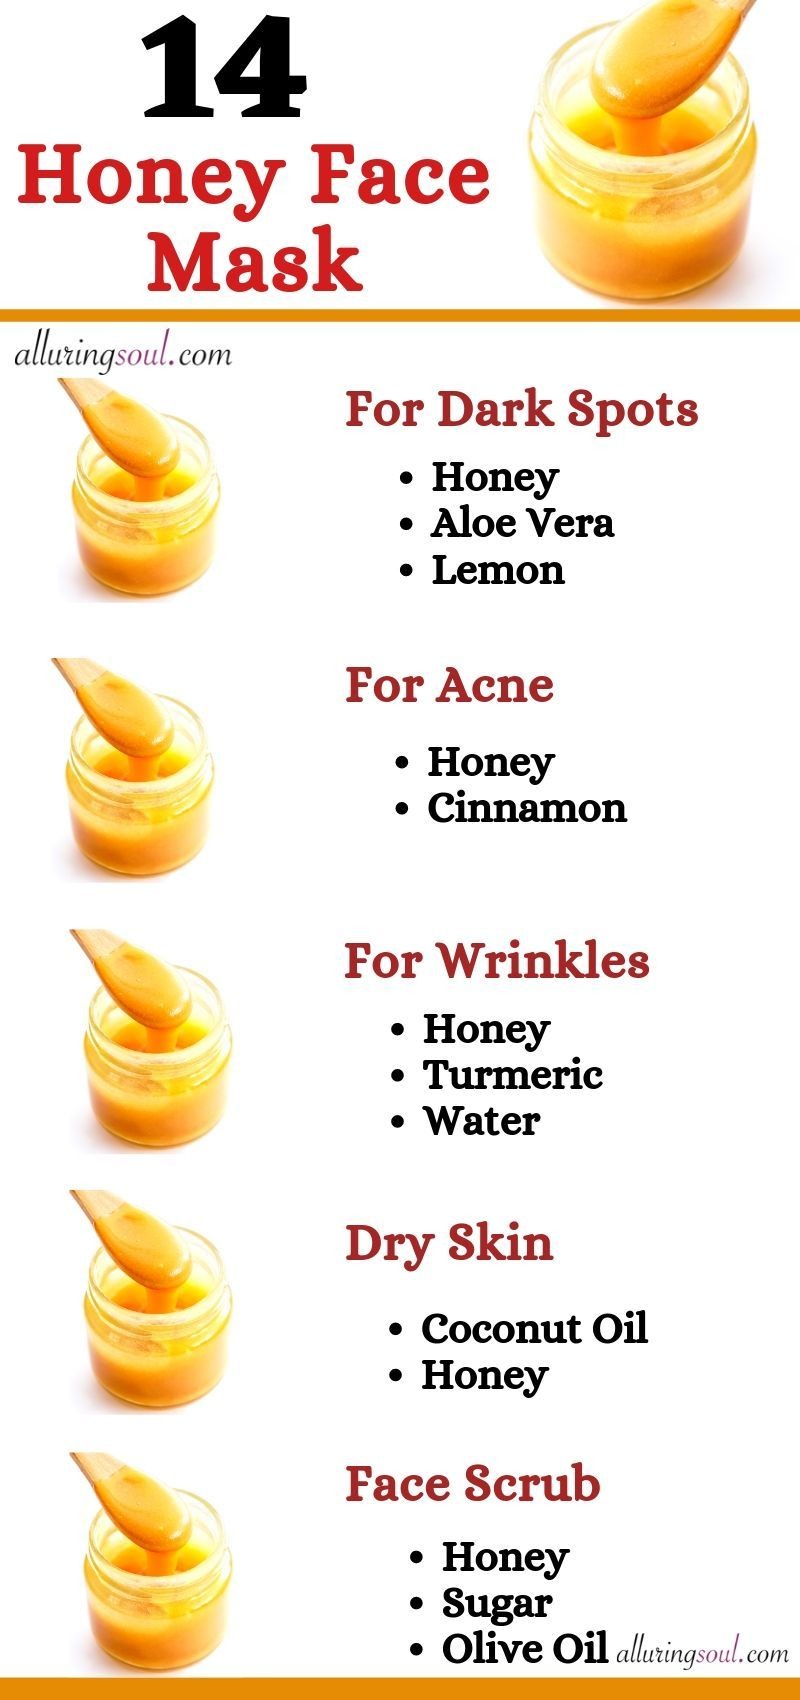 14 Honey Face Mask For Naturally Clear And Glowing Skin Alluring Soul Glowing Skin Mask Honey Face Mask Honey Face